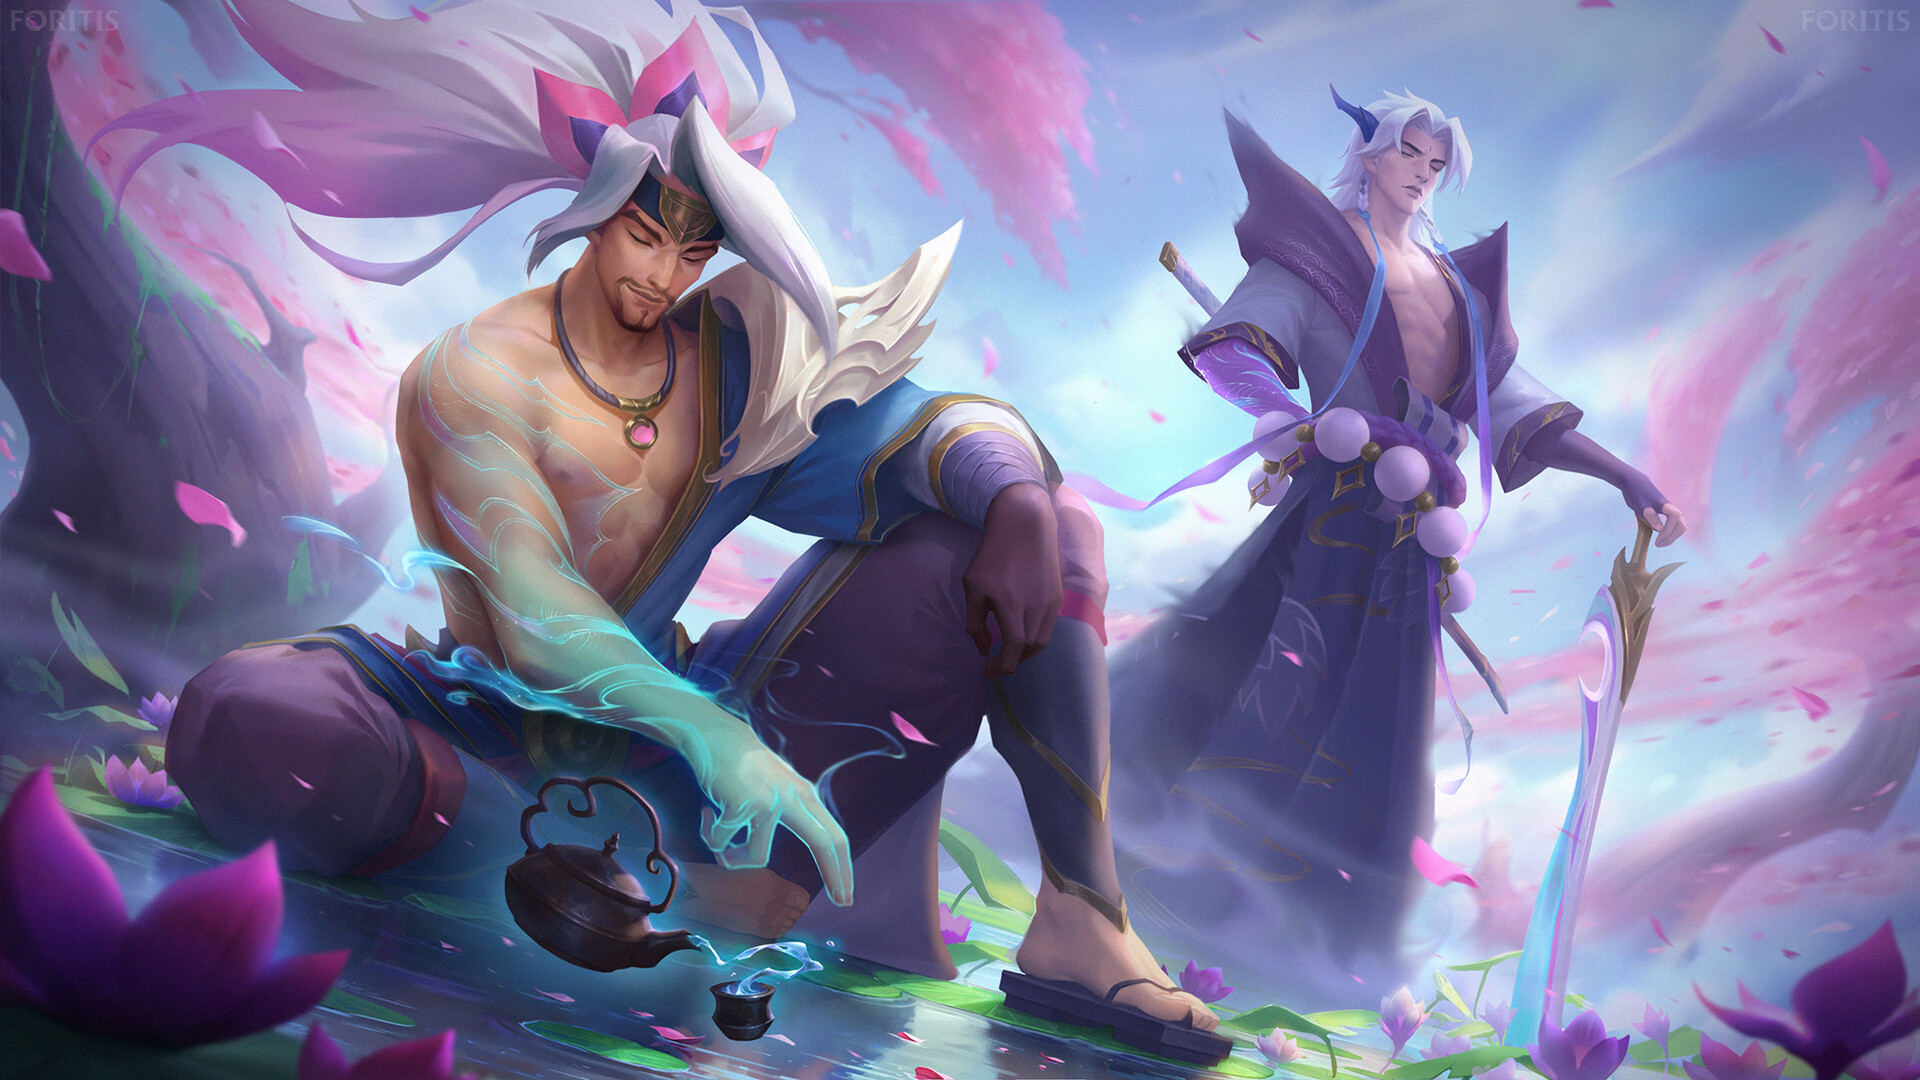 640x960 Yasuo And Yone League Of Legends Iphone 4 Iphone 4s Wallpaper Hd Games 4k Wallpapers Images Photos And Background